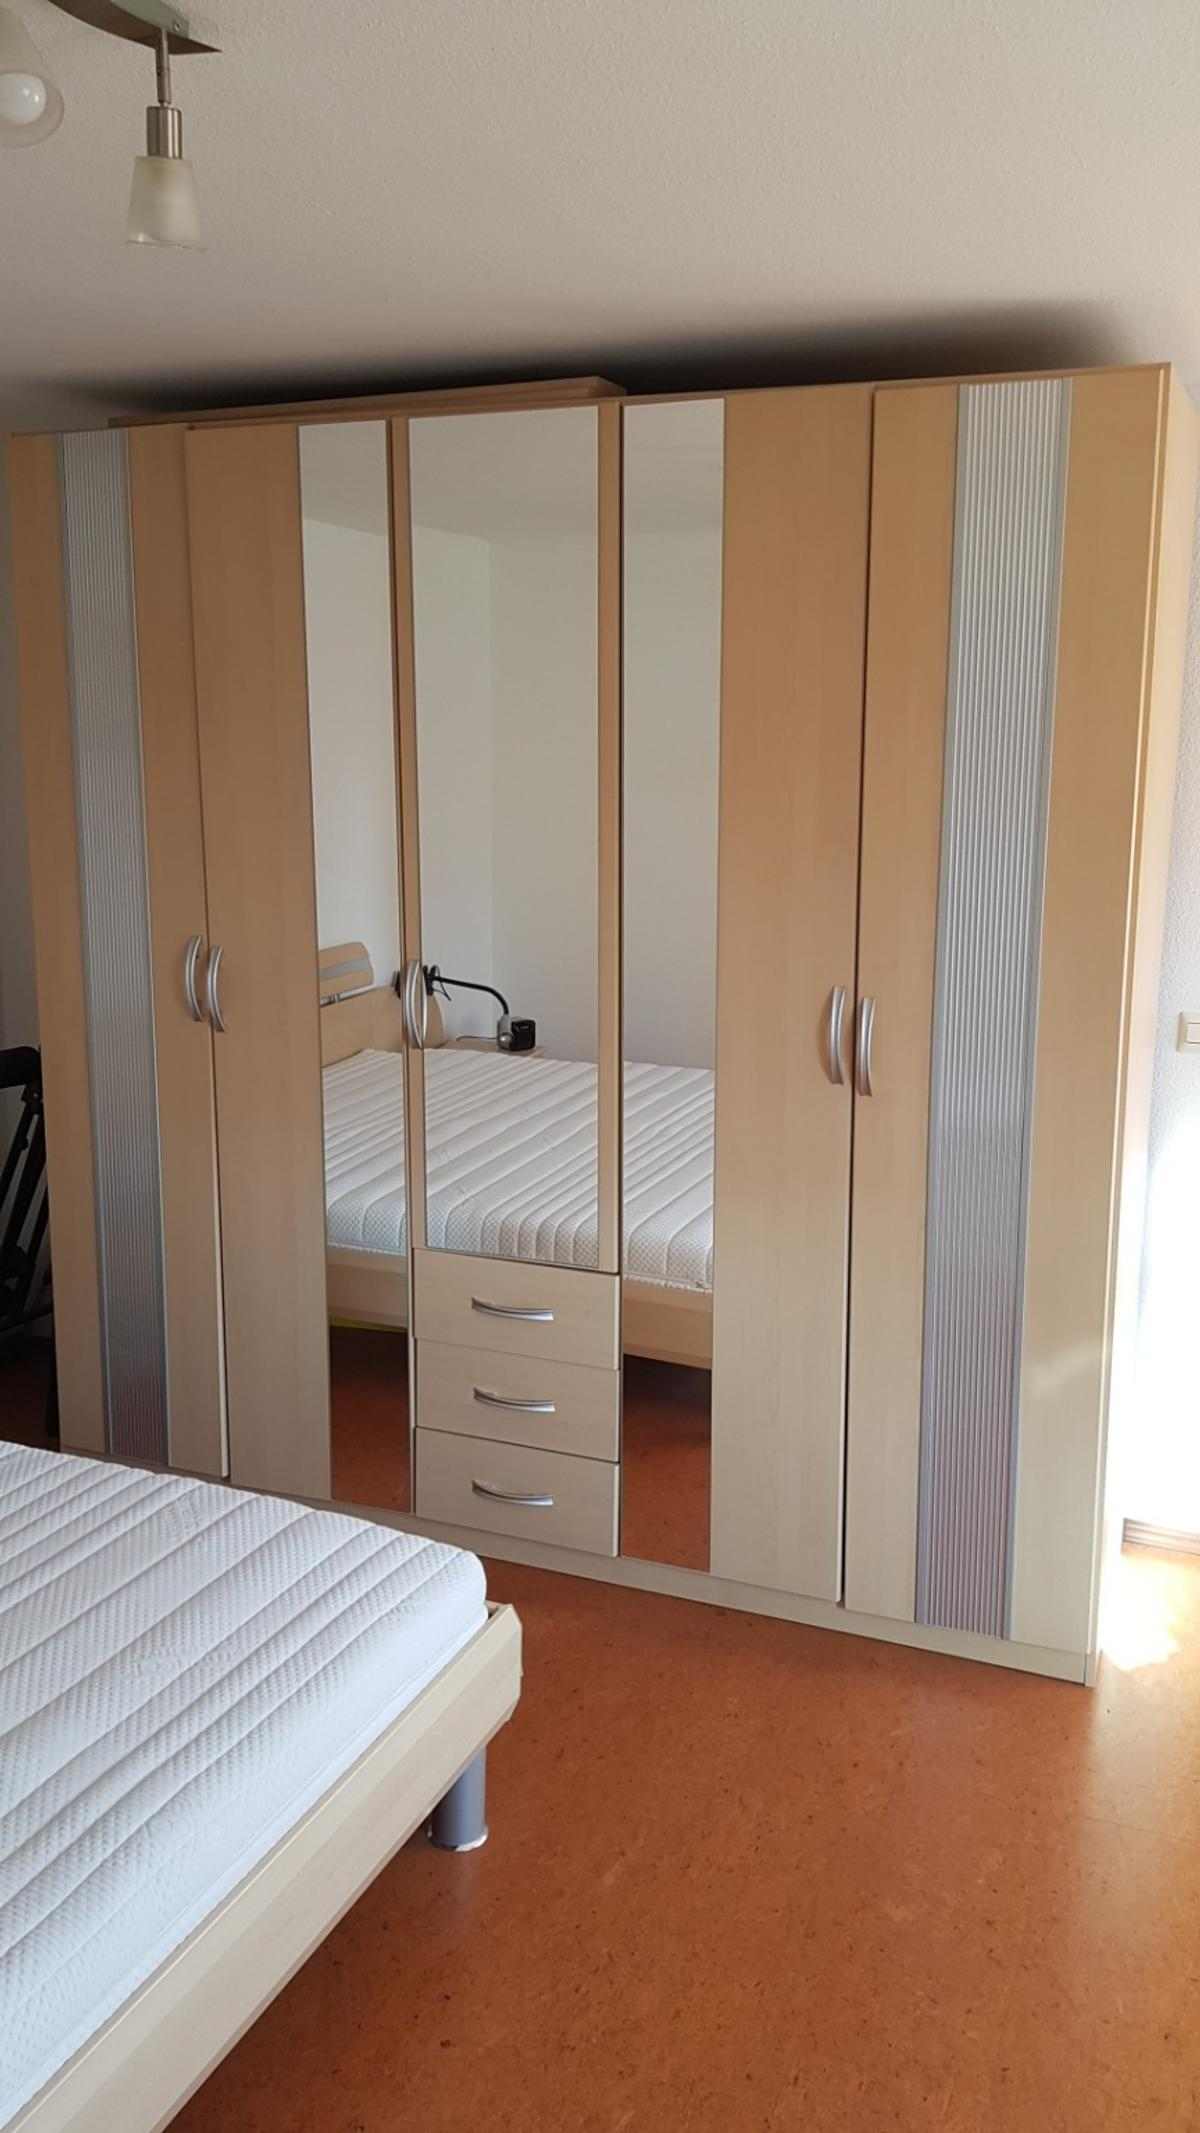 Schlafzimmer In 73432 Aalen For 100 00 For Sale Shpock